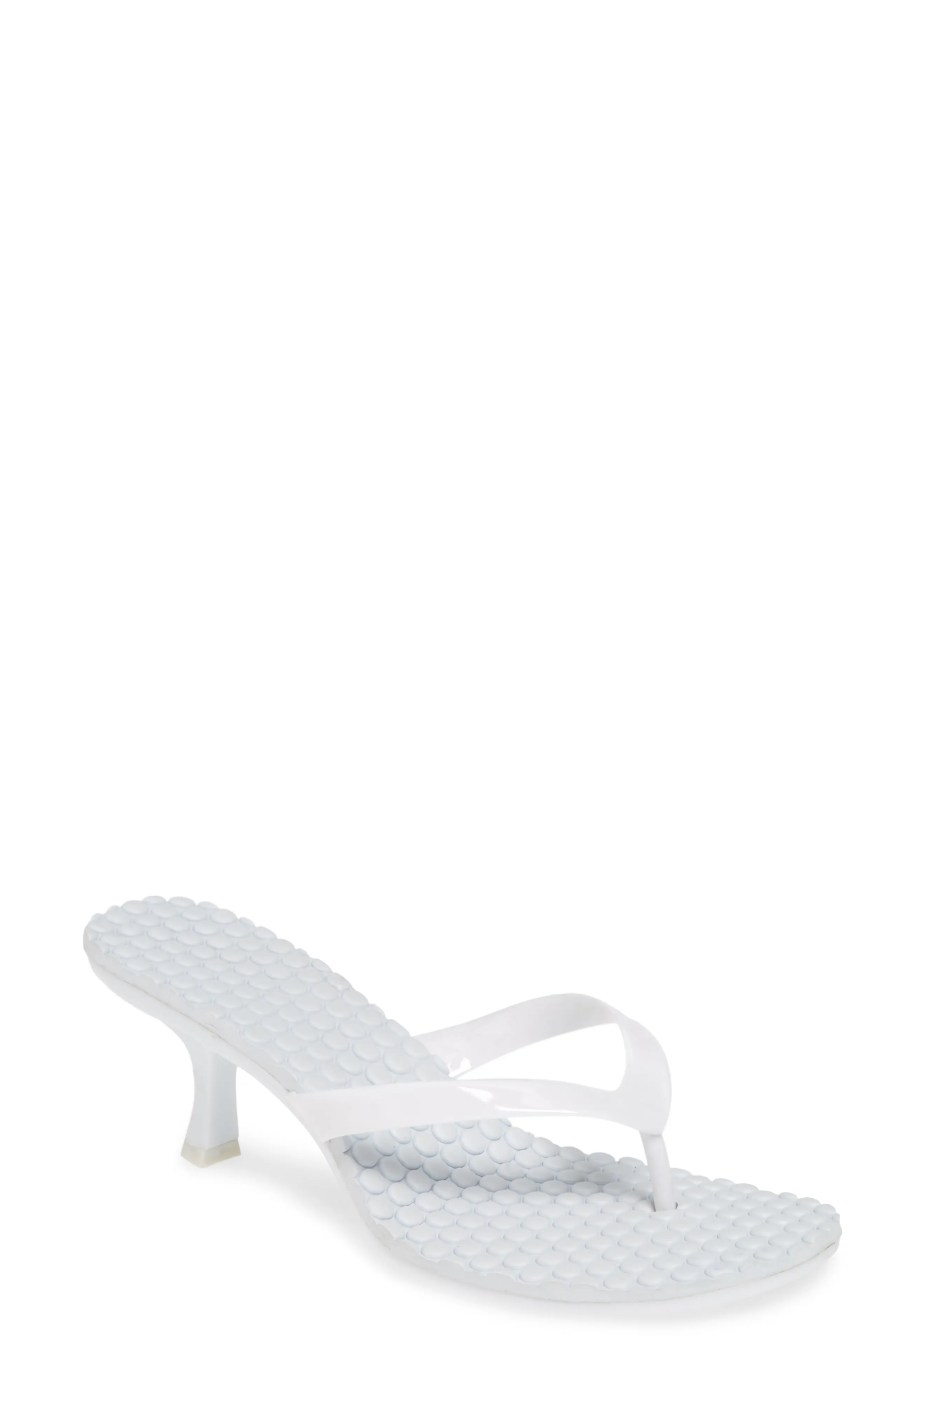 JEFFREY CAMPBELL Thong 2 Slide Sandal, Main, color, WHITE